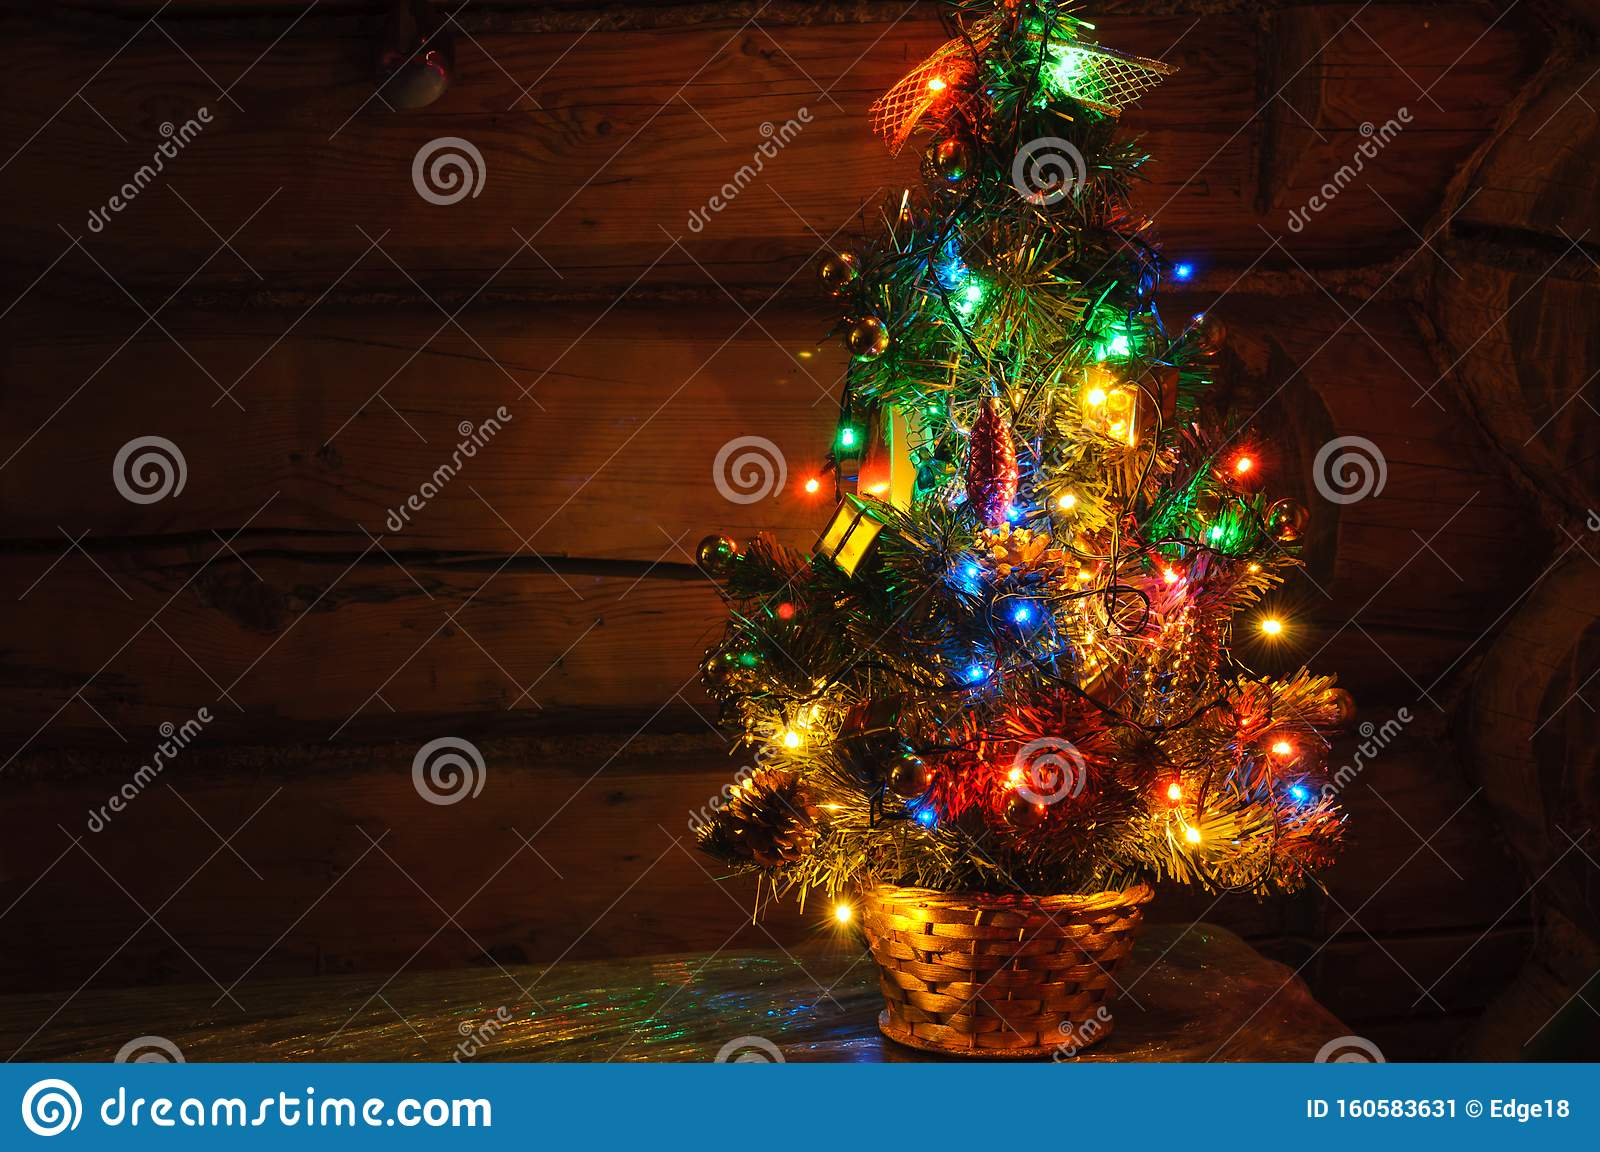 Small Christmas Tree With Multi Colored Lights At Dark Countryside Room Stock Image Image Of Natural Background 160583631